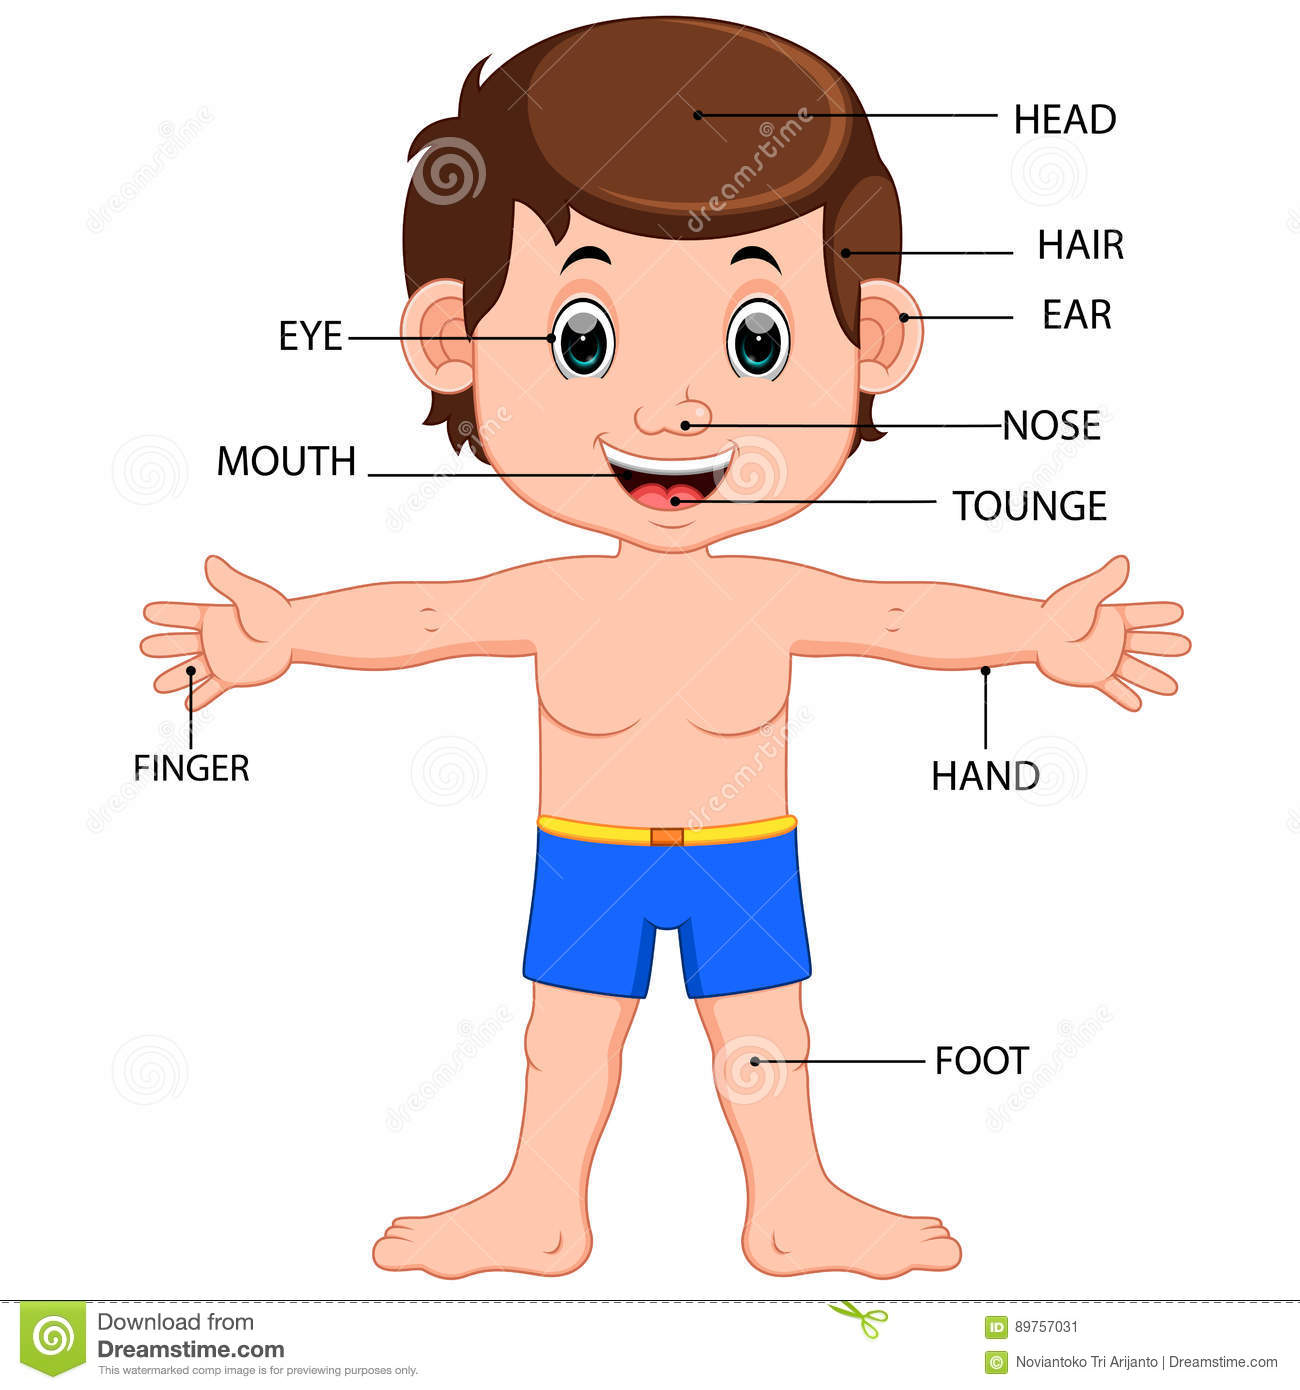 hight resolution of illustration of boy body parts diagram poster